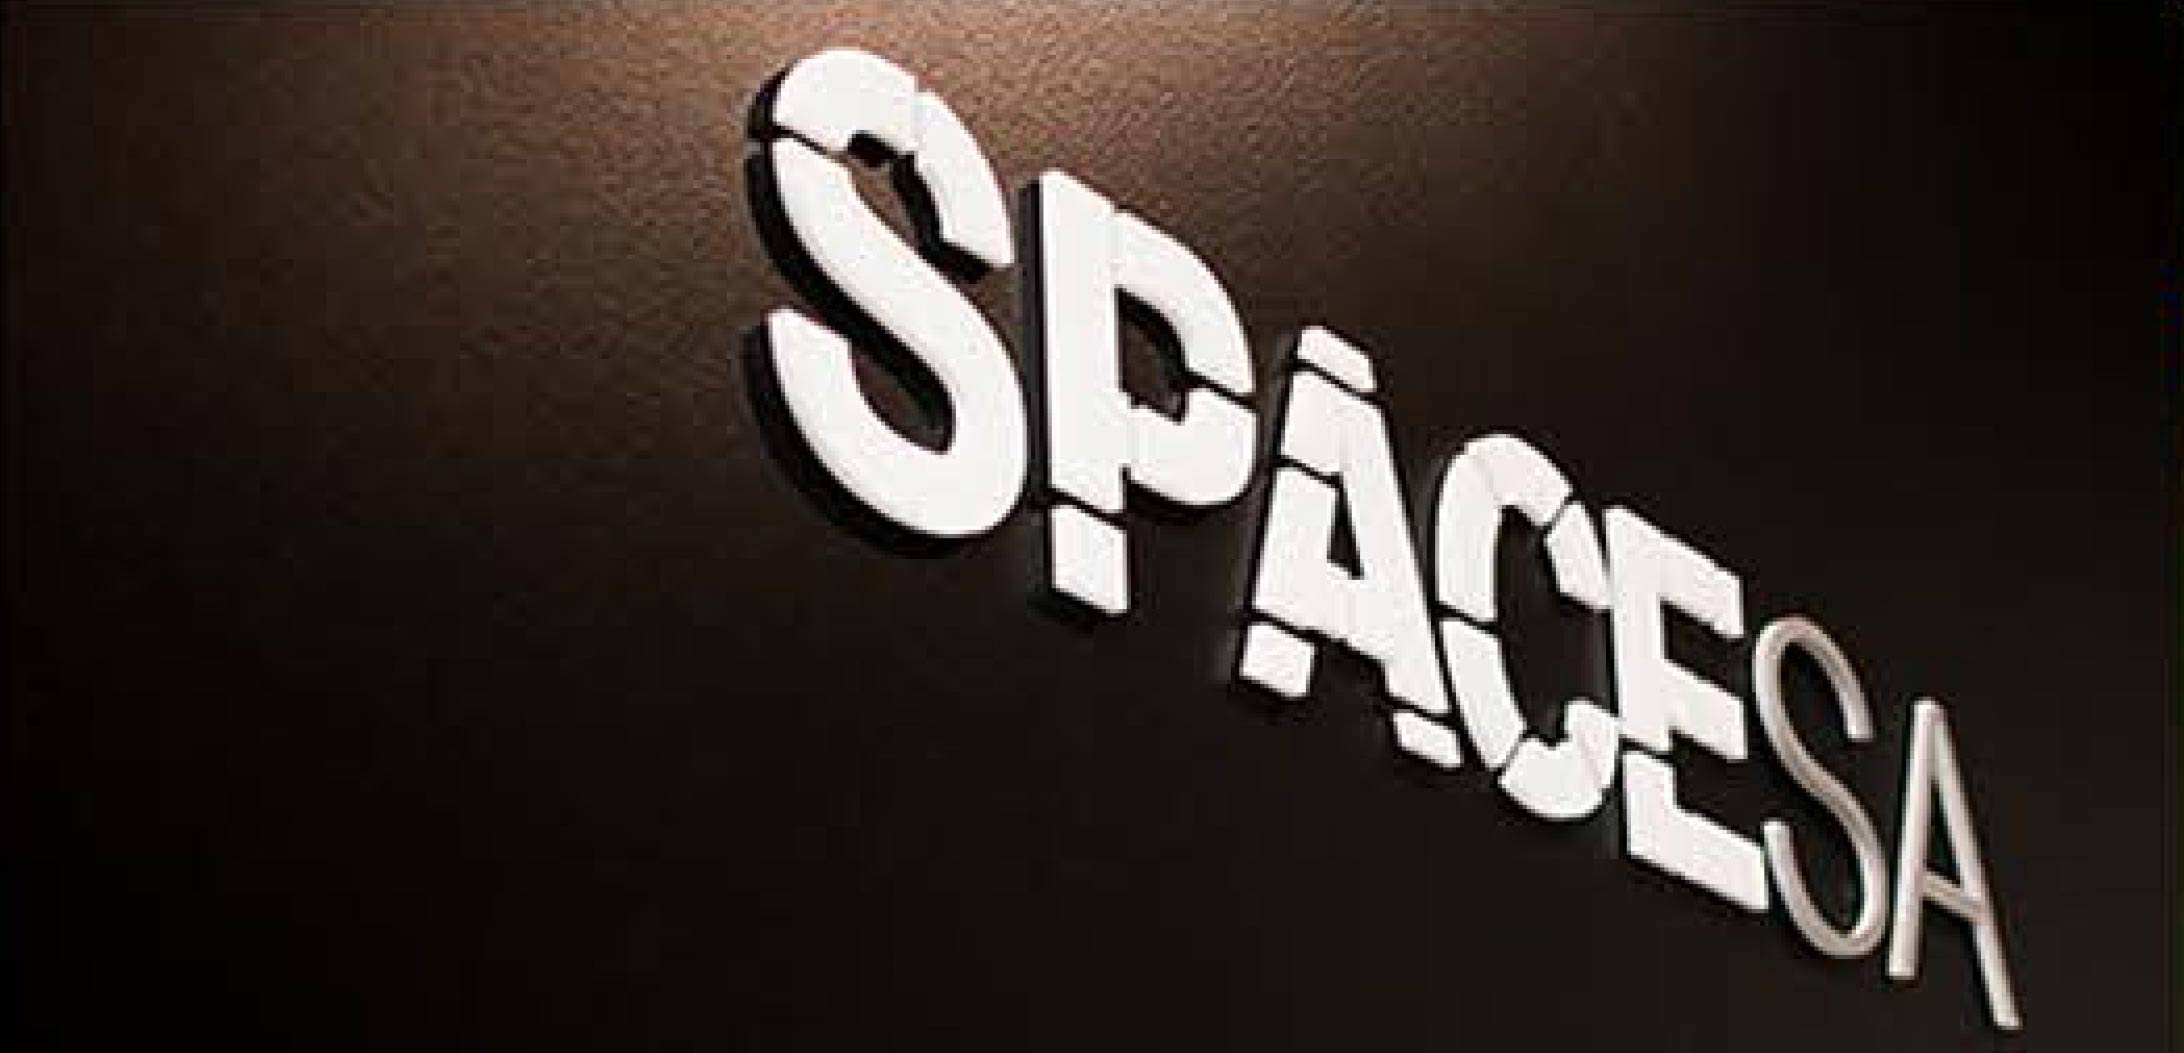 space sa temp image sign b